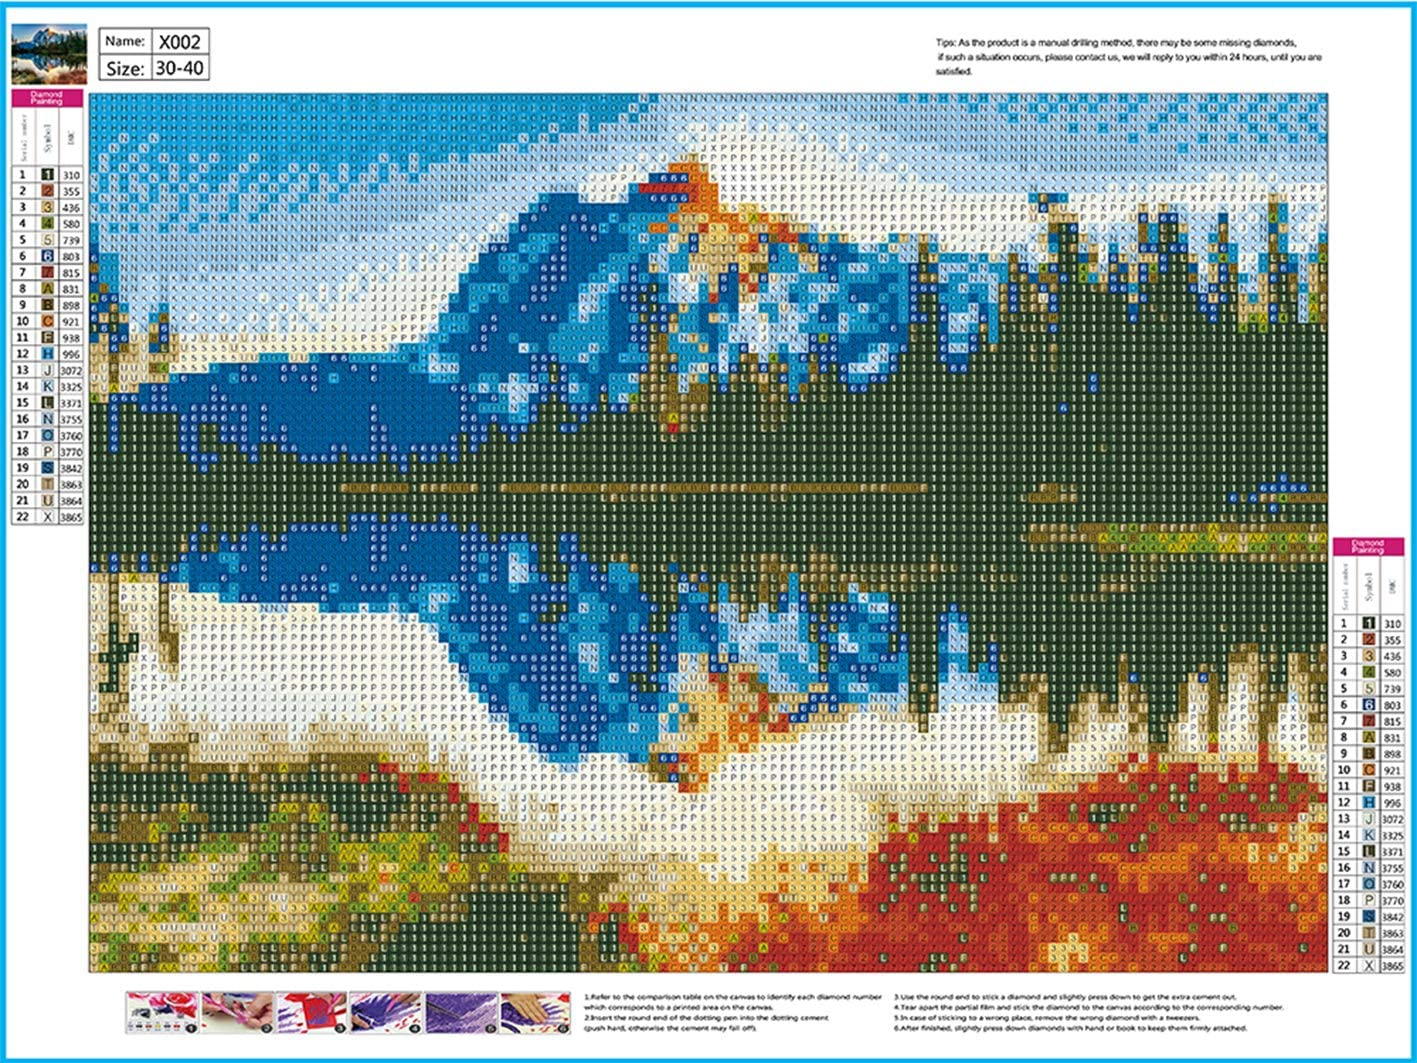 LIK 5D Diamond Painting Full Drill Snow Mountains and Rivers Landscape by Number Kits for Adults 16X12inch Rhinestone Painting Set Embroidery Art Craft Home Decoration Landscape Series